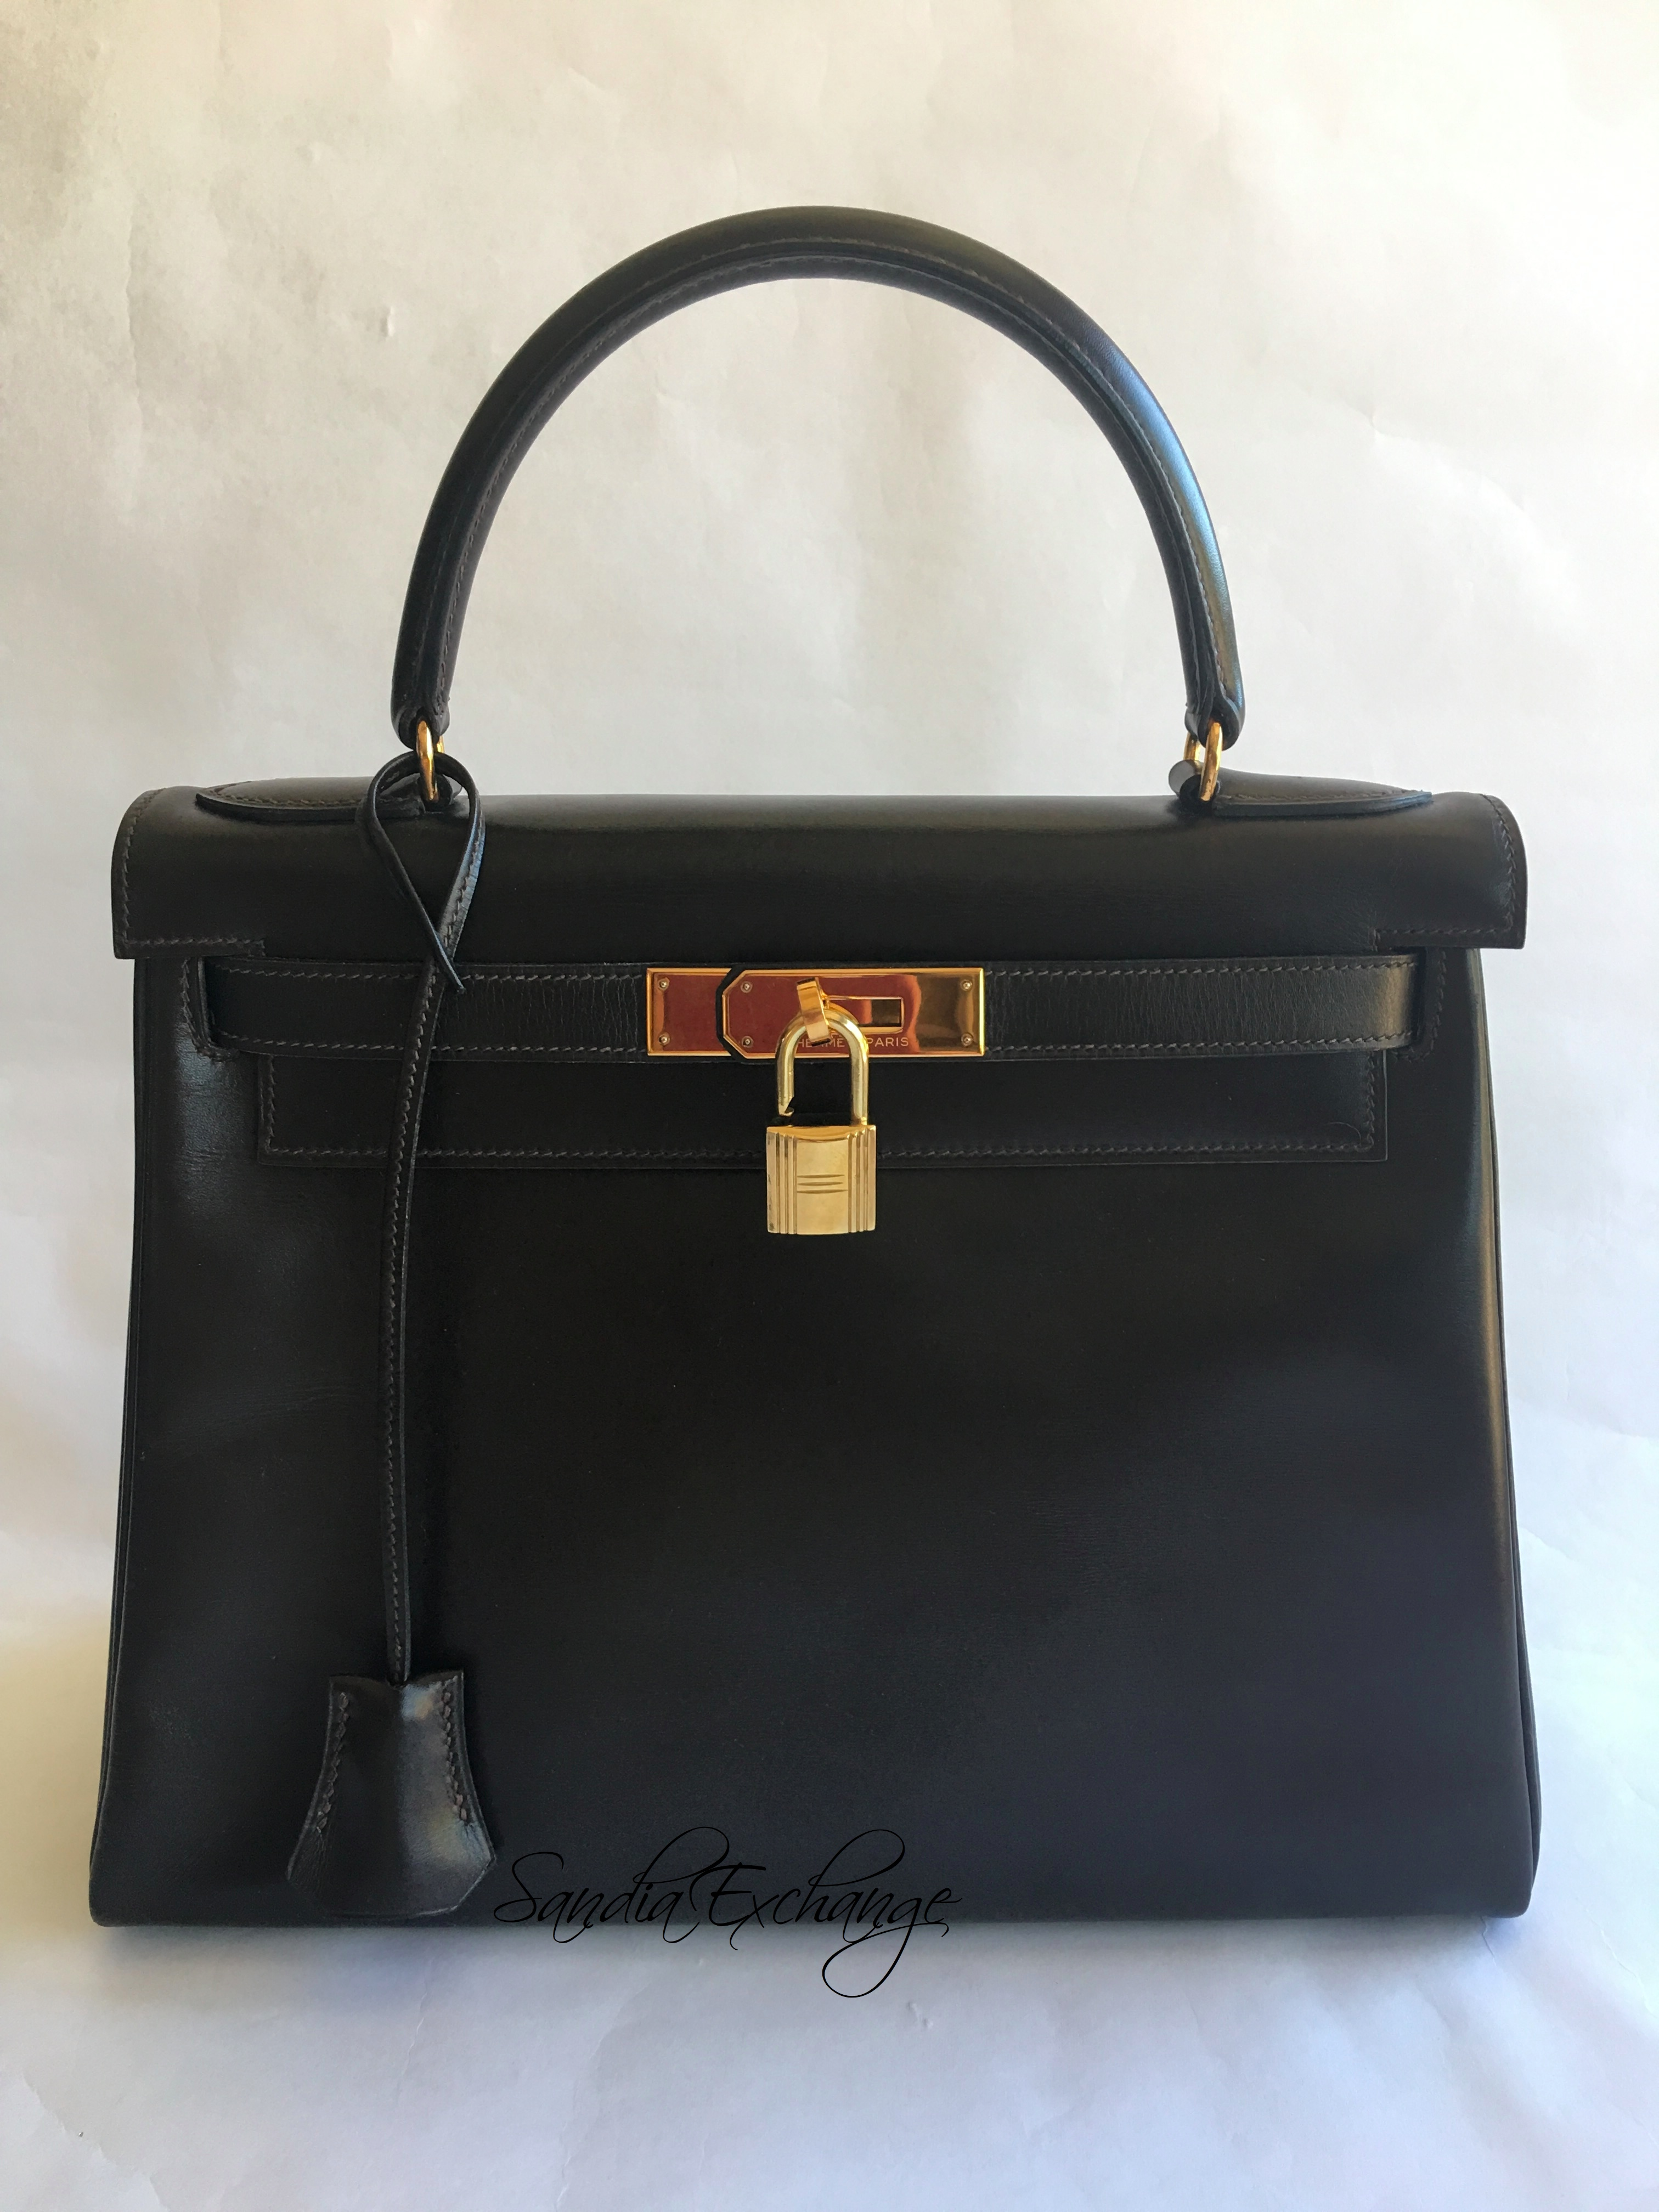 73c3ca7beac9 HERMES Kelly 28 cm Chocolate Box Calf Gold Hardware Authentic Vintage HERMÈS